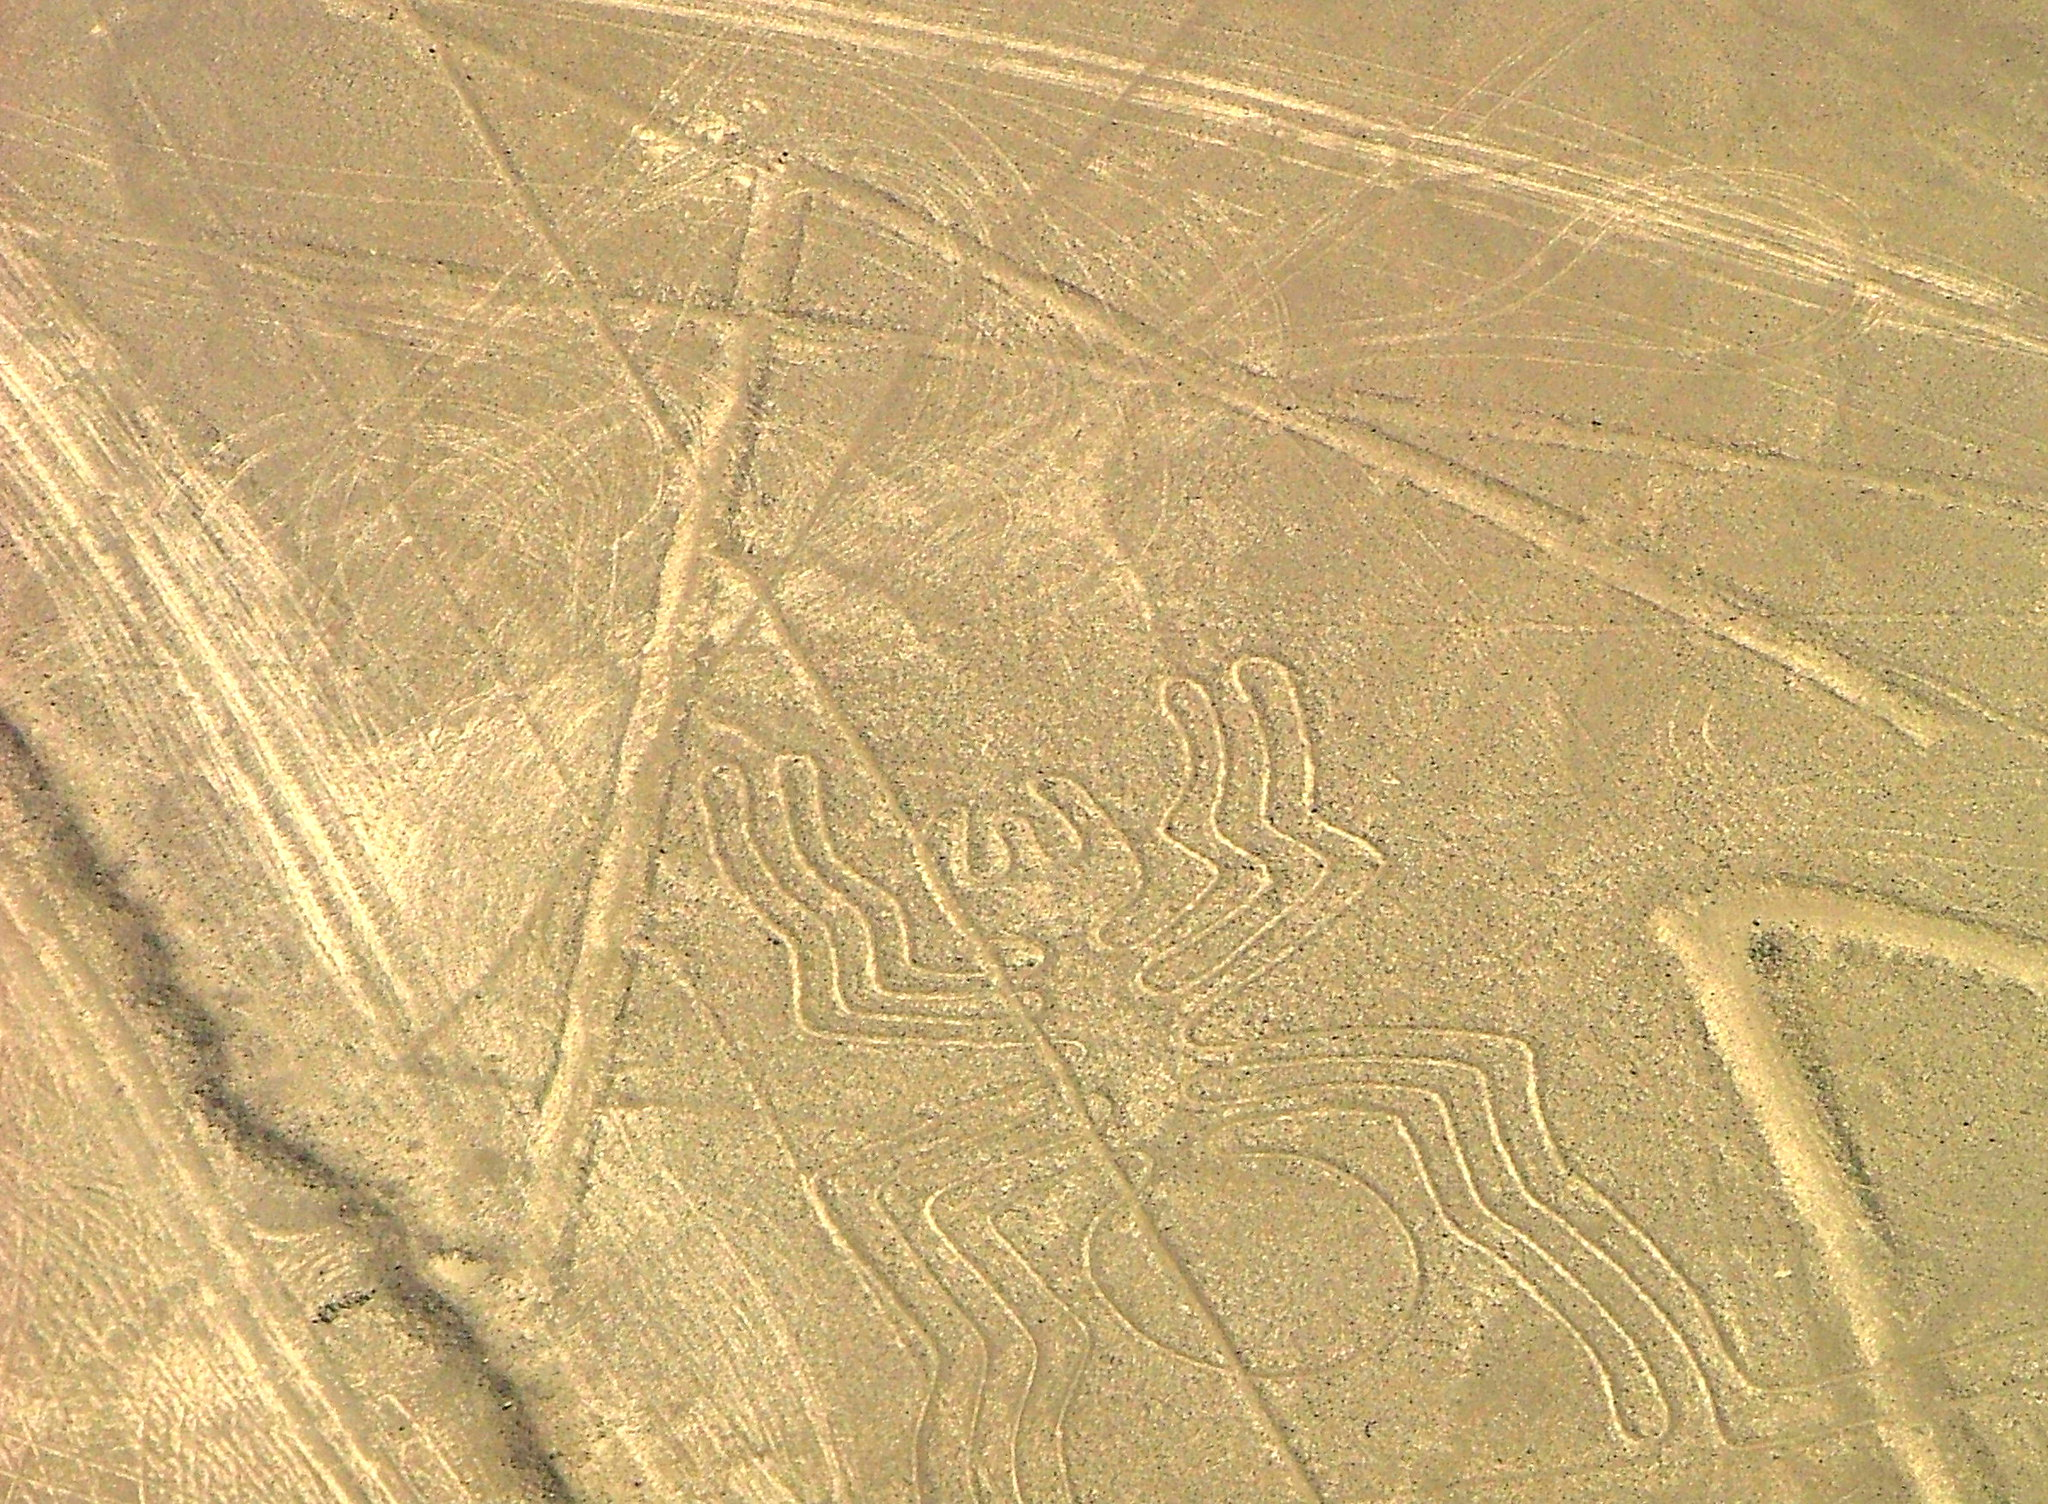 Land of the Incas | Nazca Lines, Peru